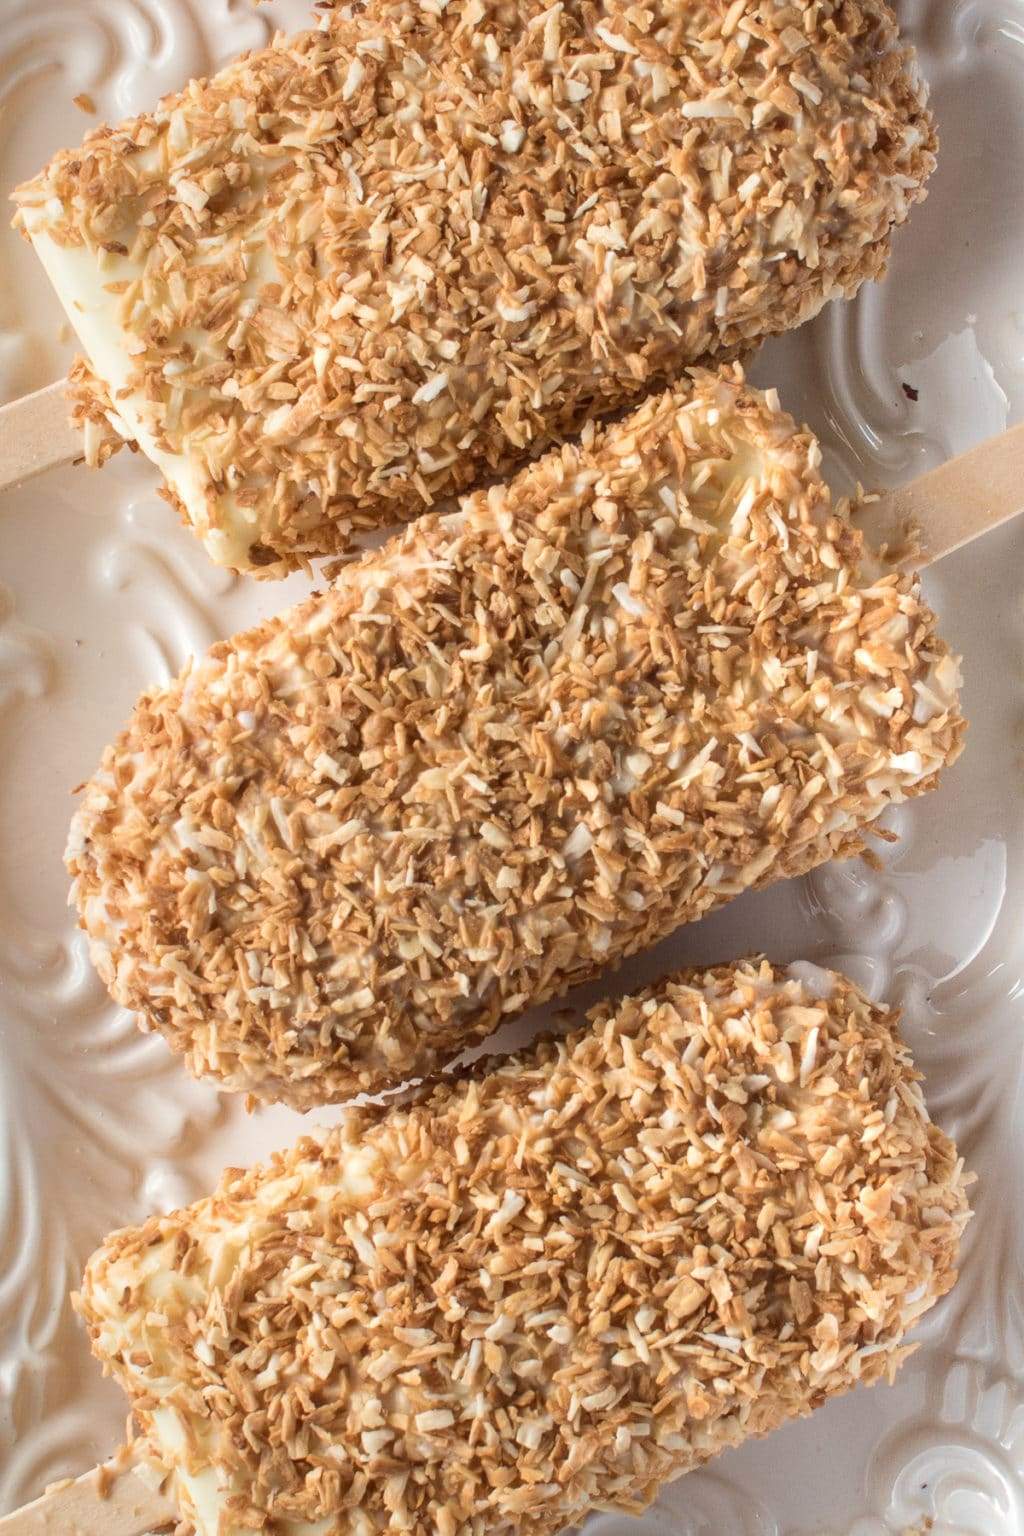 homemade coconut ice cream bars coated in toasted coconut resting on a white textured plate.